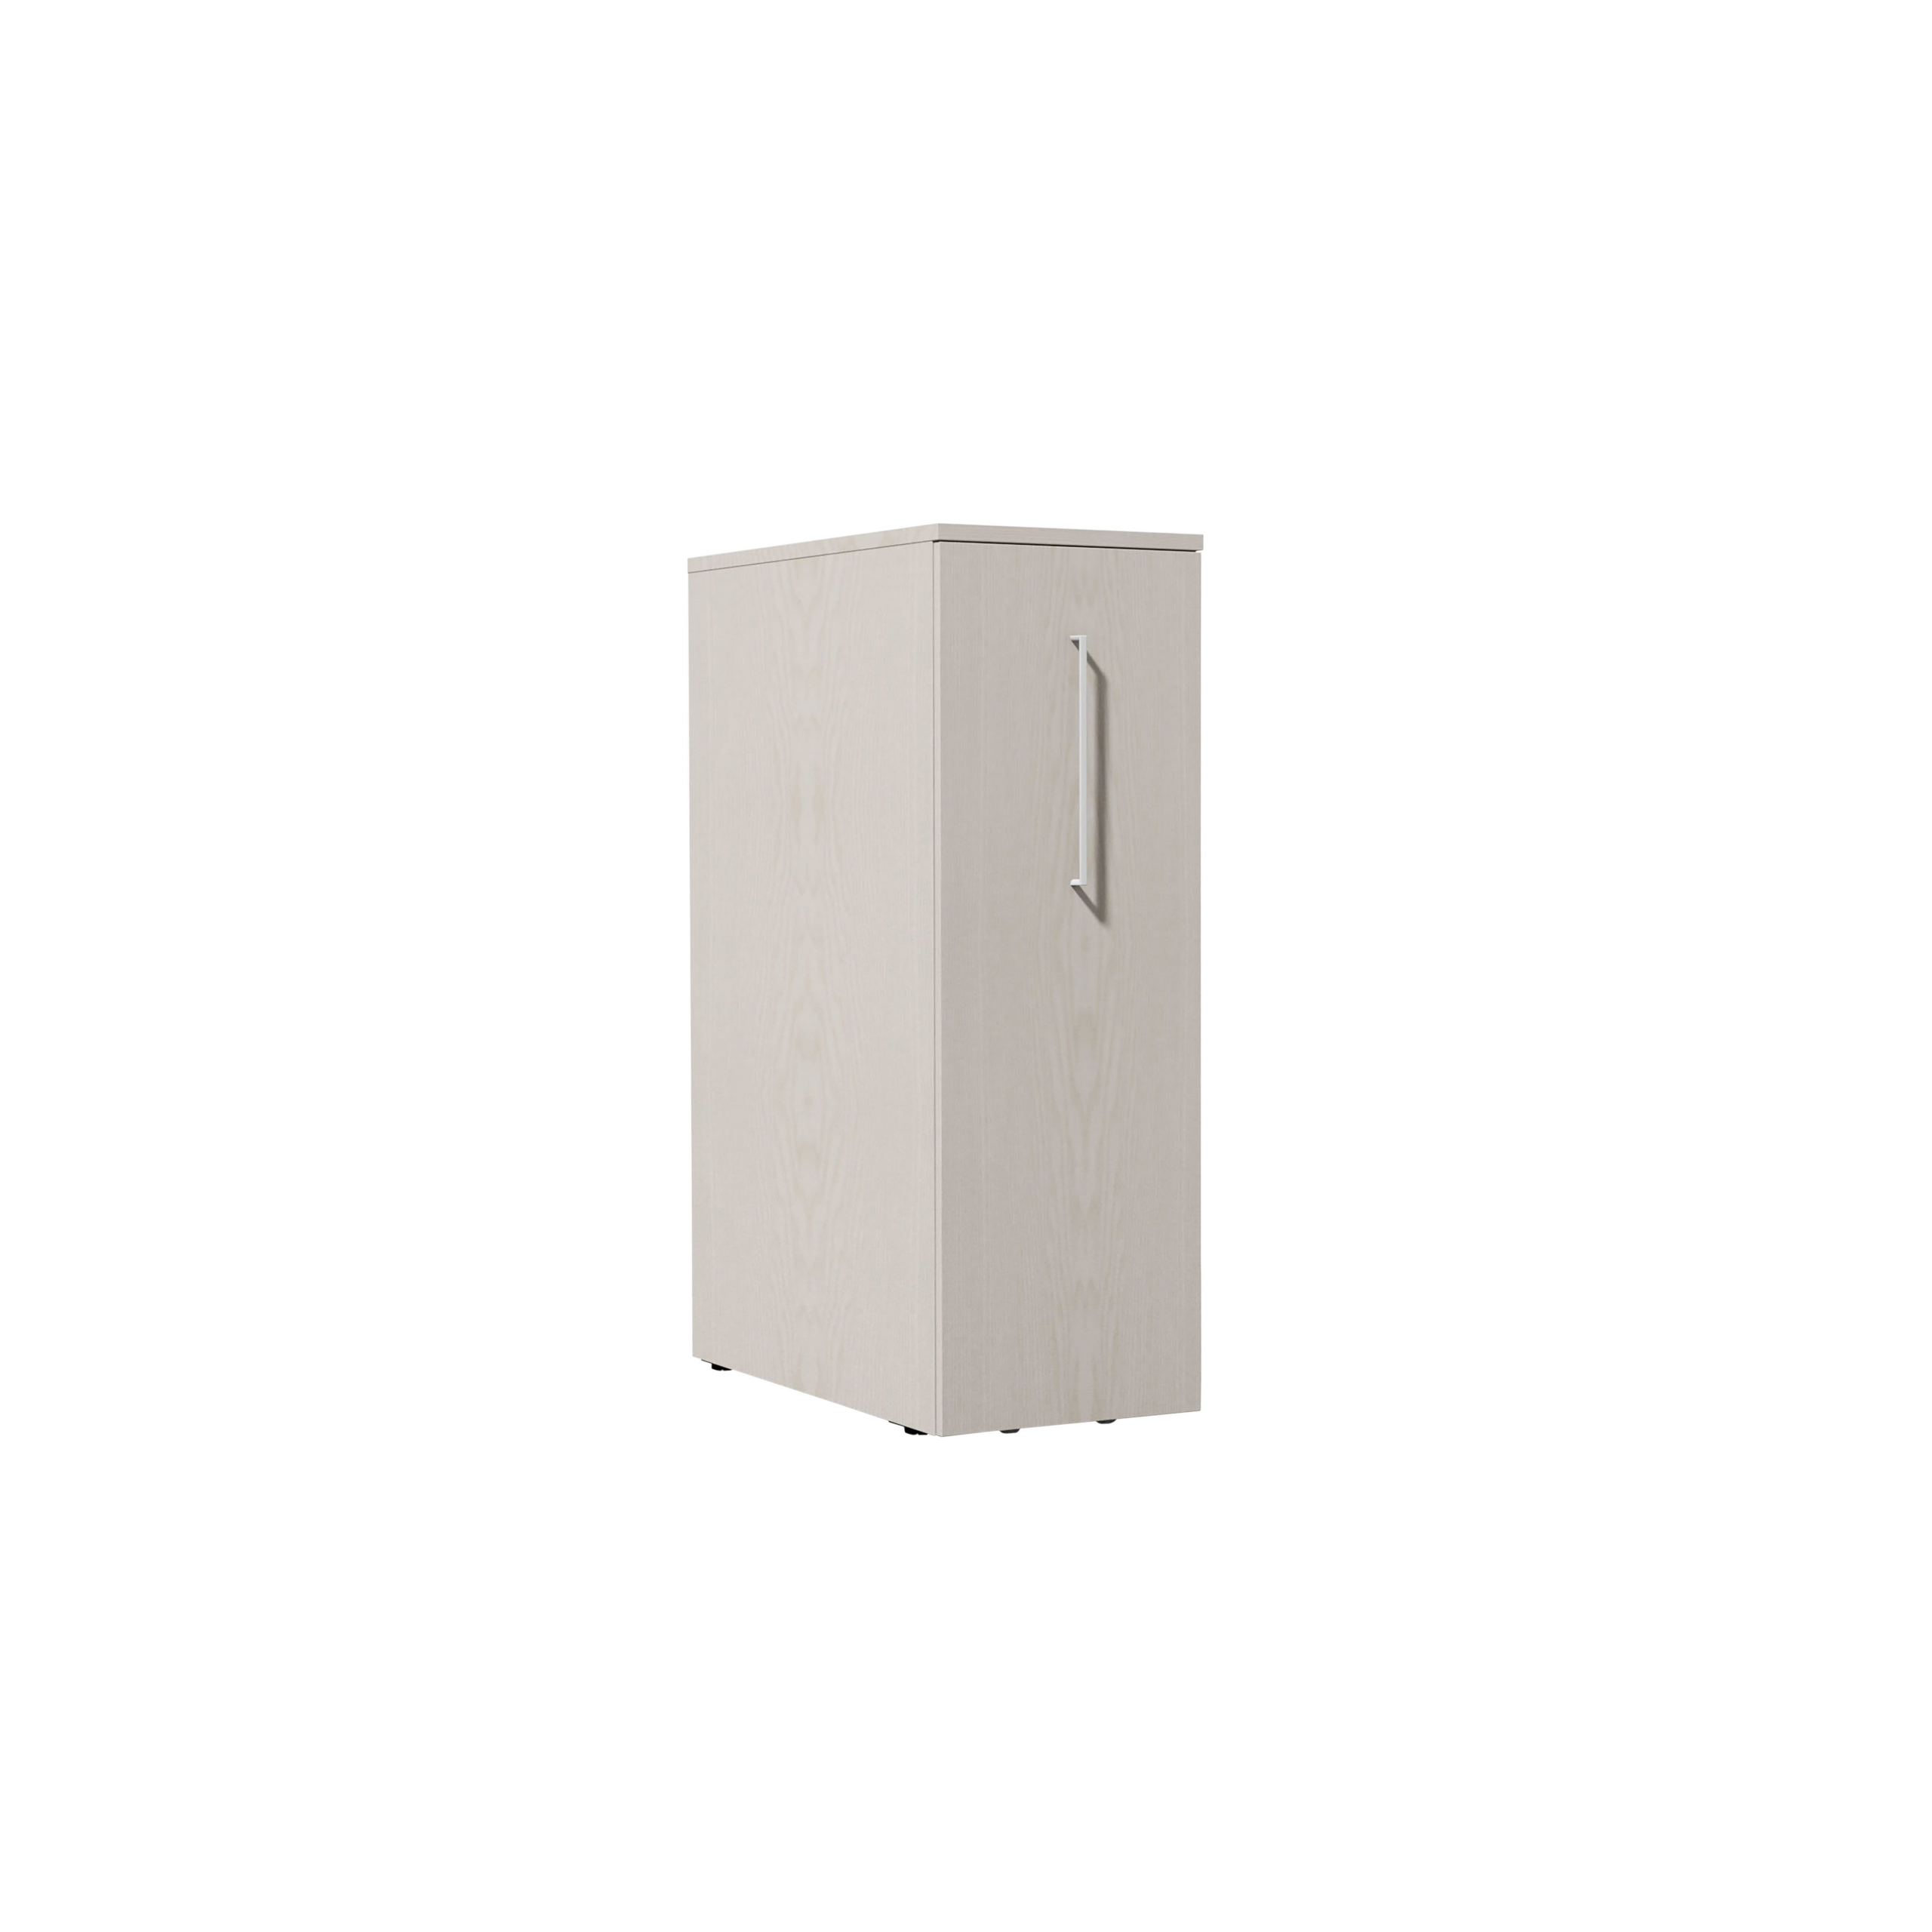 Hold Tower cabinet product image 1